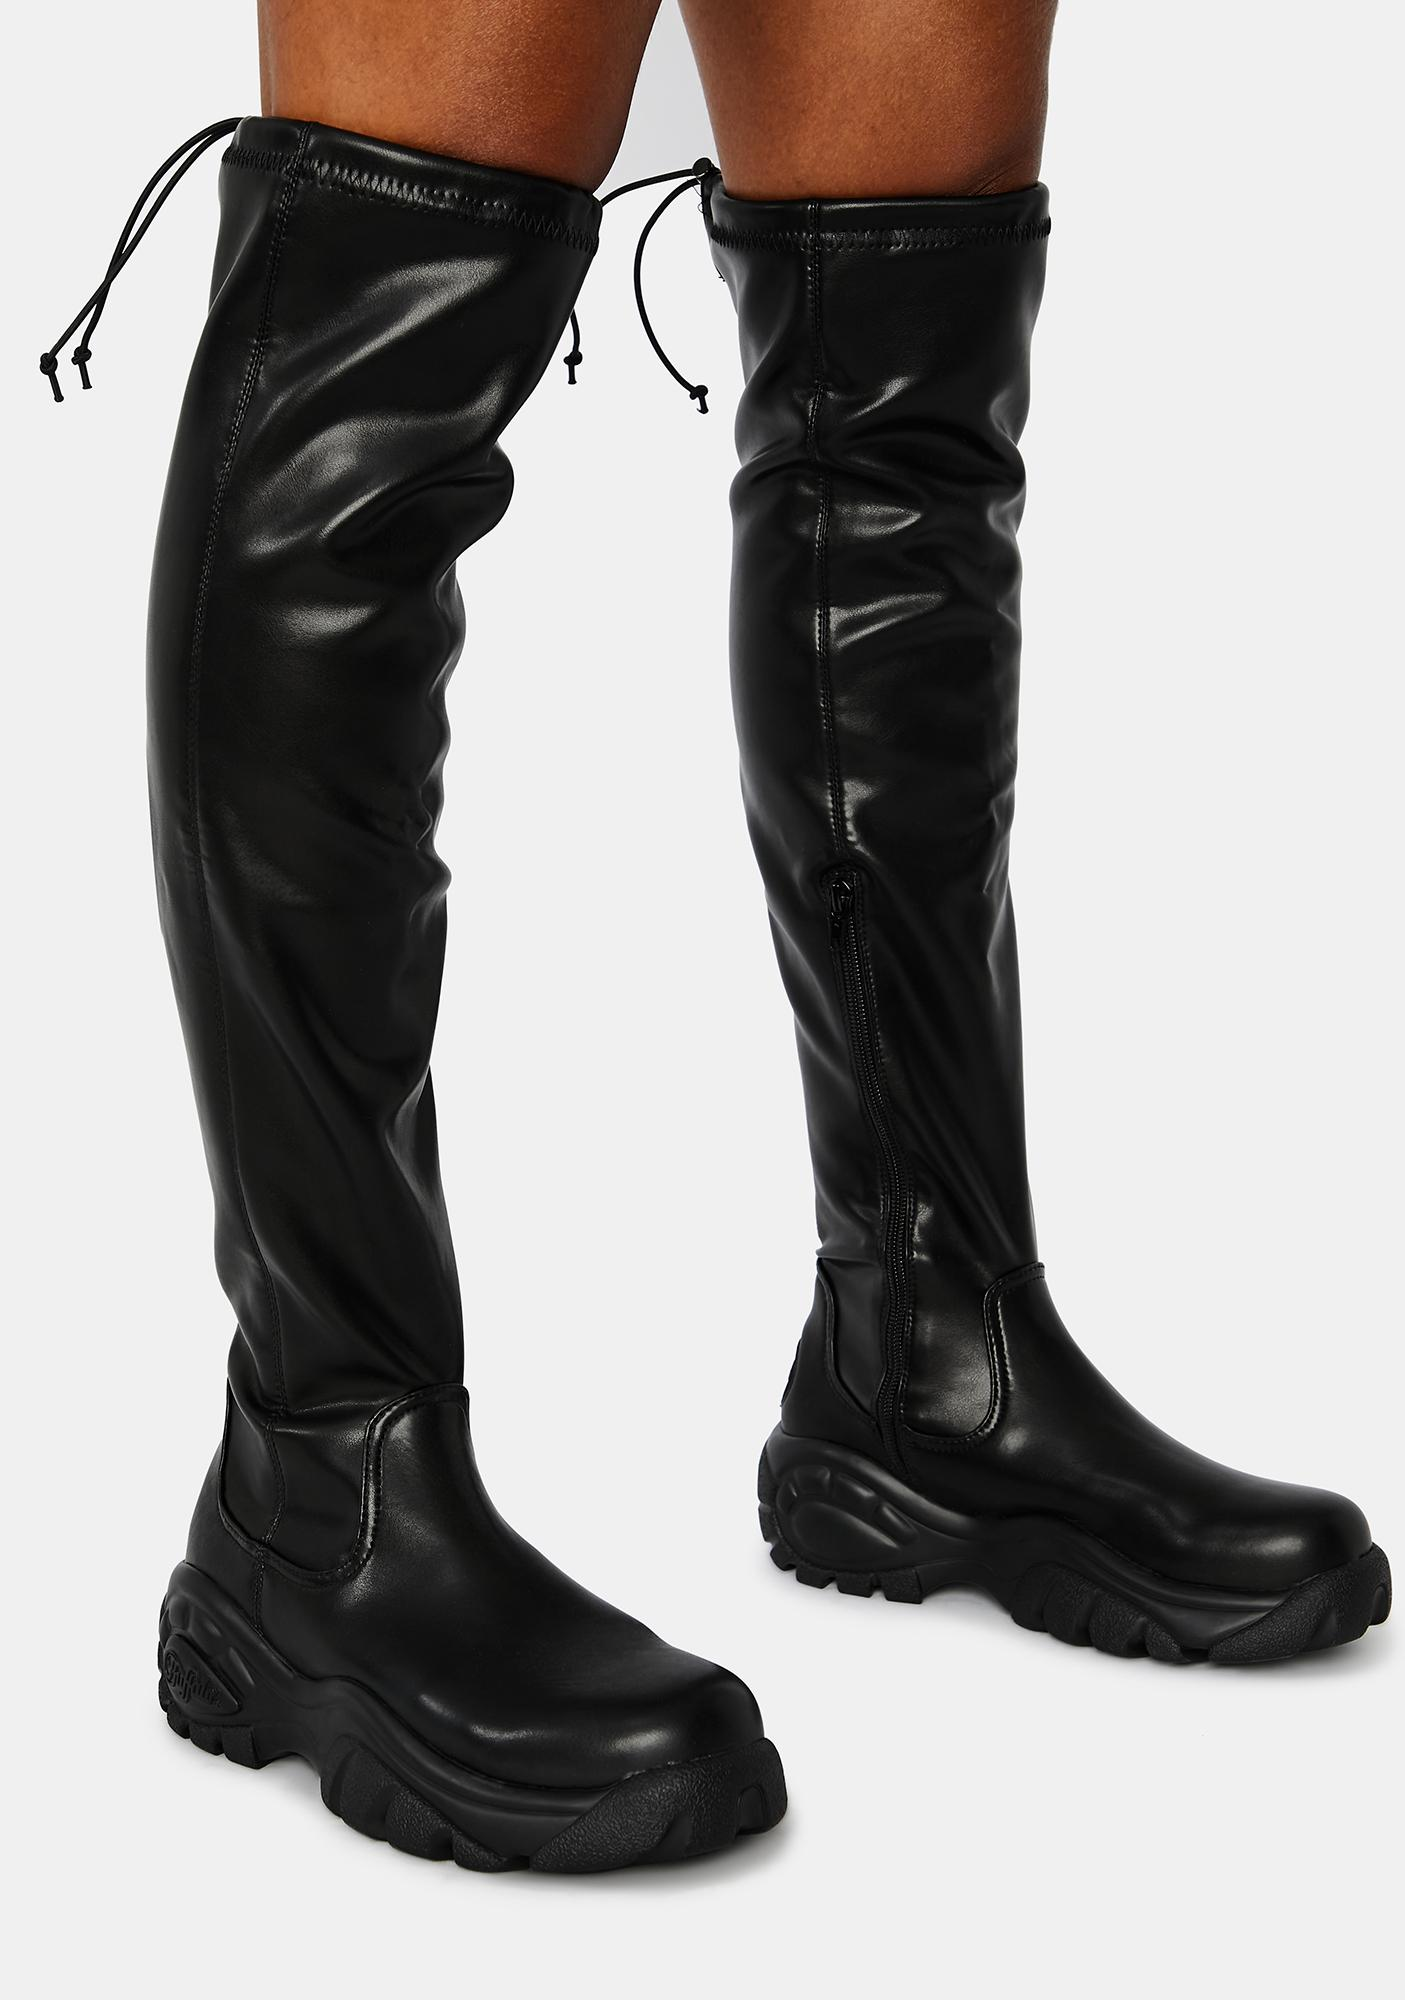 Buffalo London Lonnie Over The Knee Boots